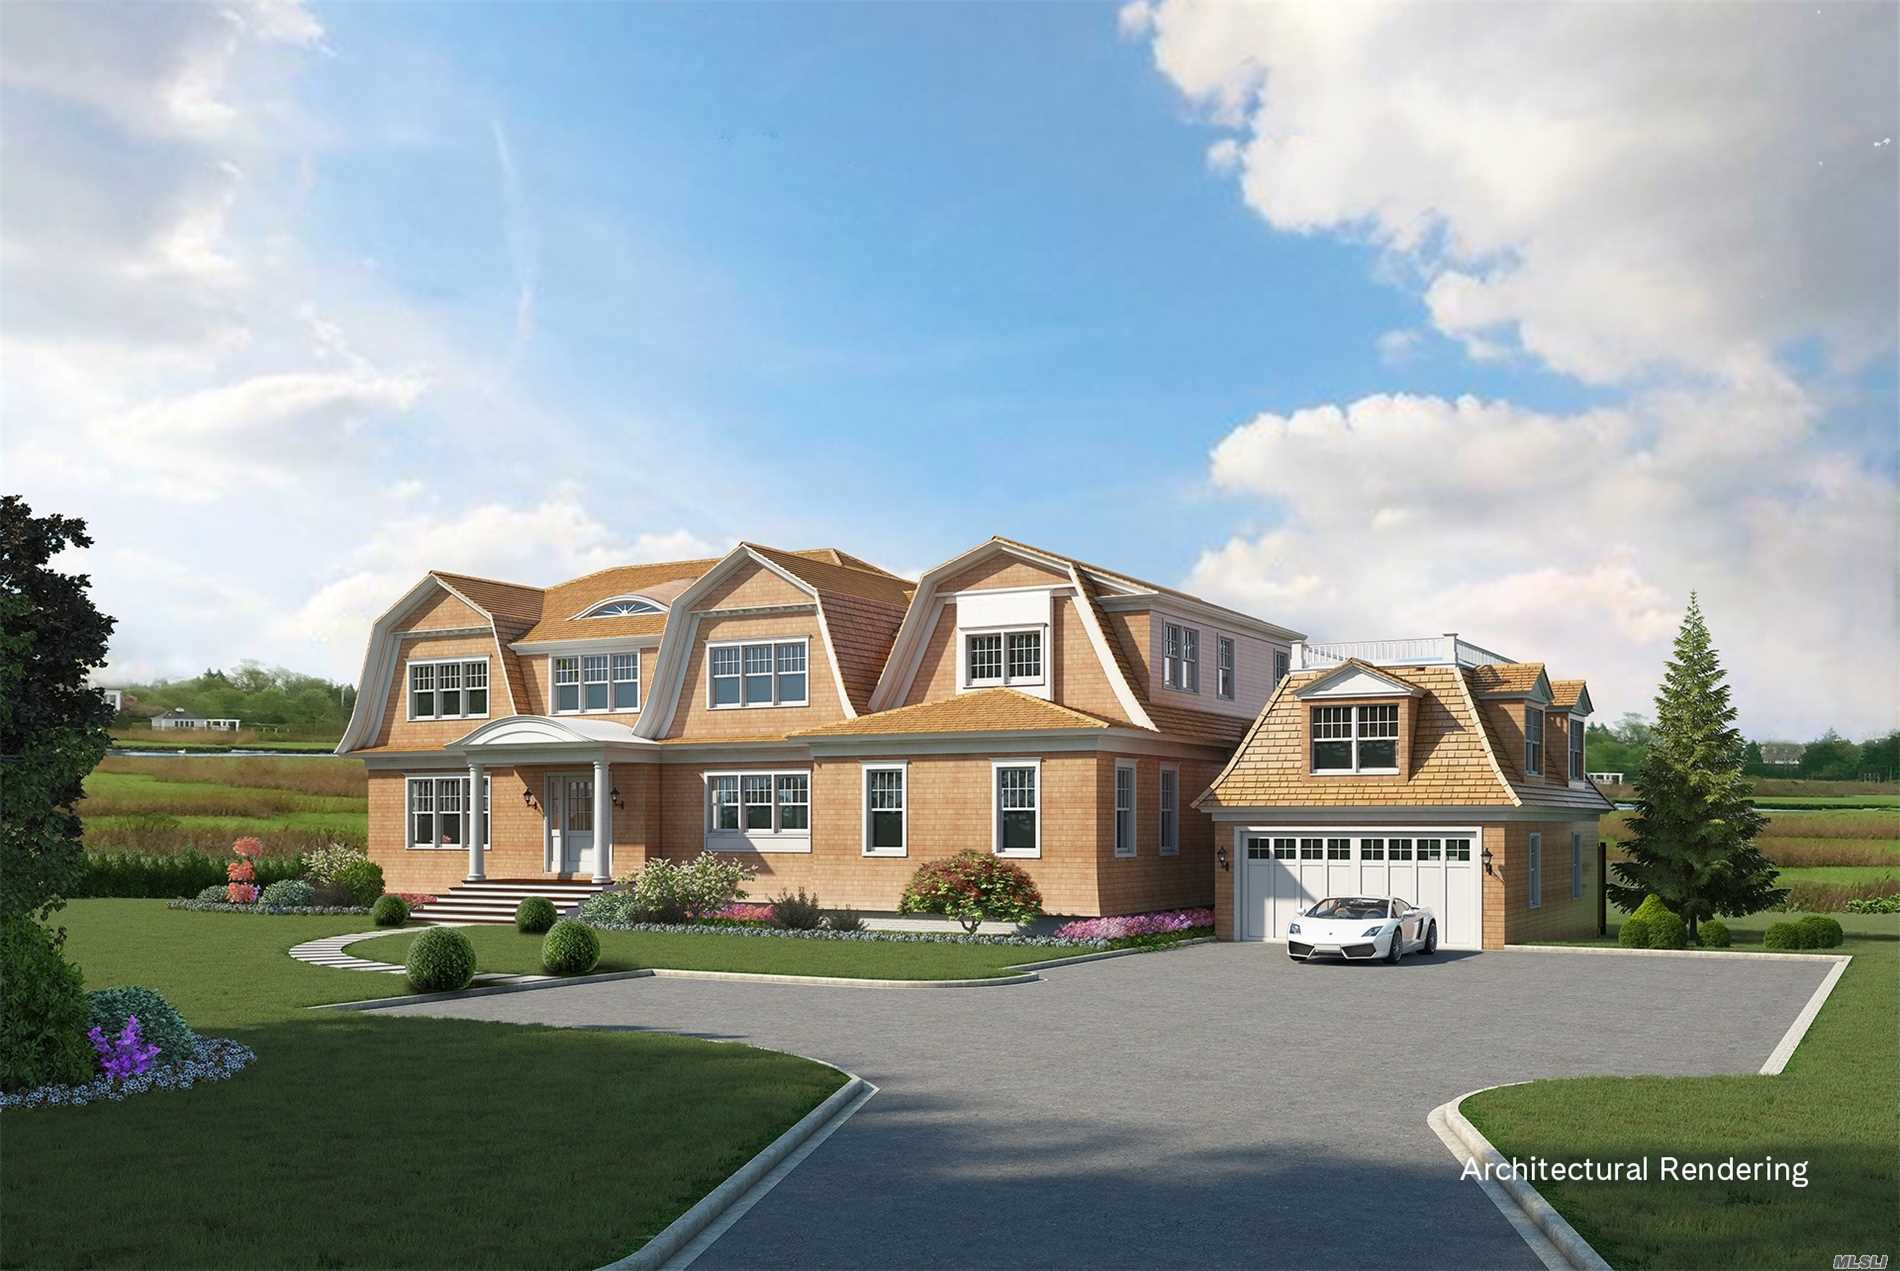 New Construction. Exceptionally Design 6, 100 Sq Ft Home Features Both Grand And Casual Living Spaces. A Prime Location In The Village Of Quogue With Water And Rolling Meadow Views. Spacious Open Plan, Chefs Kitchen, Living Room With F/P. On Suite Guest Room. Bar/Lounge Area With 16Ft Retractable Nano Glass Wall. Master Bedroom With Private Deck, 3 Additional En Suite Bedrooms. Upper Deck Lounge Area. Breeze Way Connecting Detached Garage With Bonus Room And 1/2 Bath. Gunite Pool With Spa.